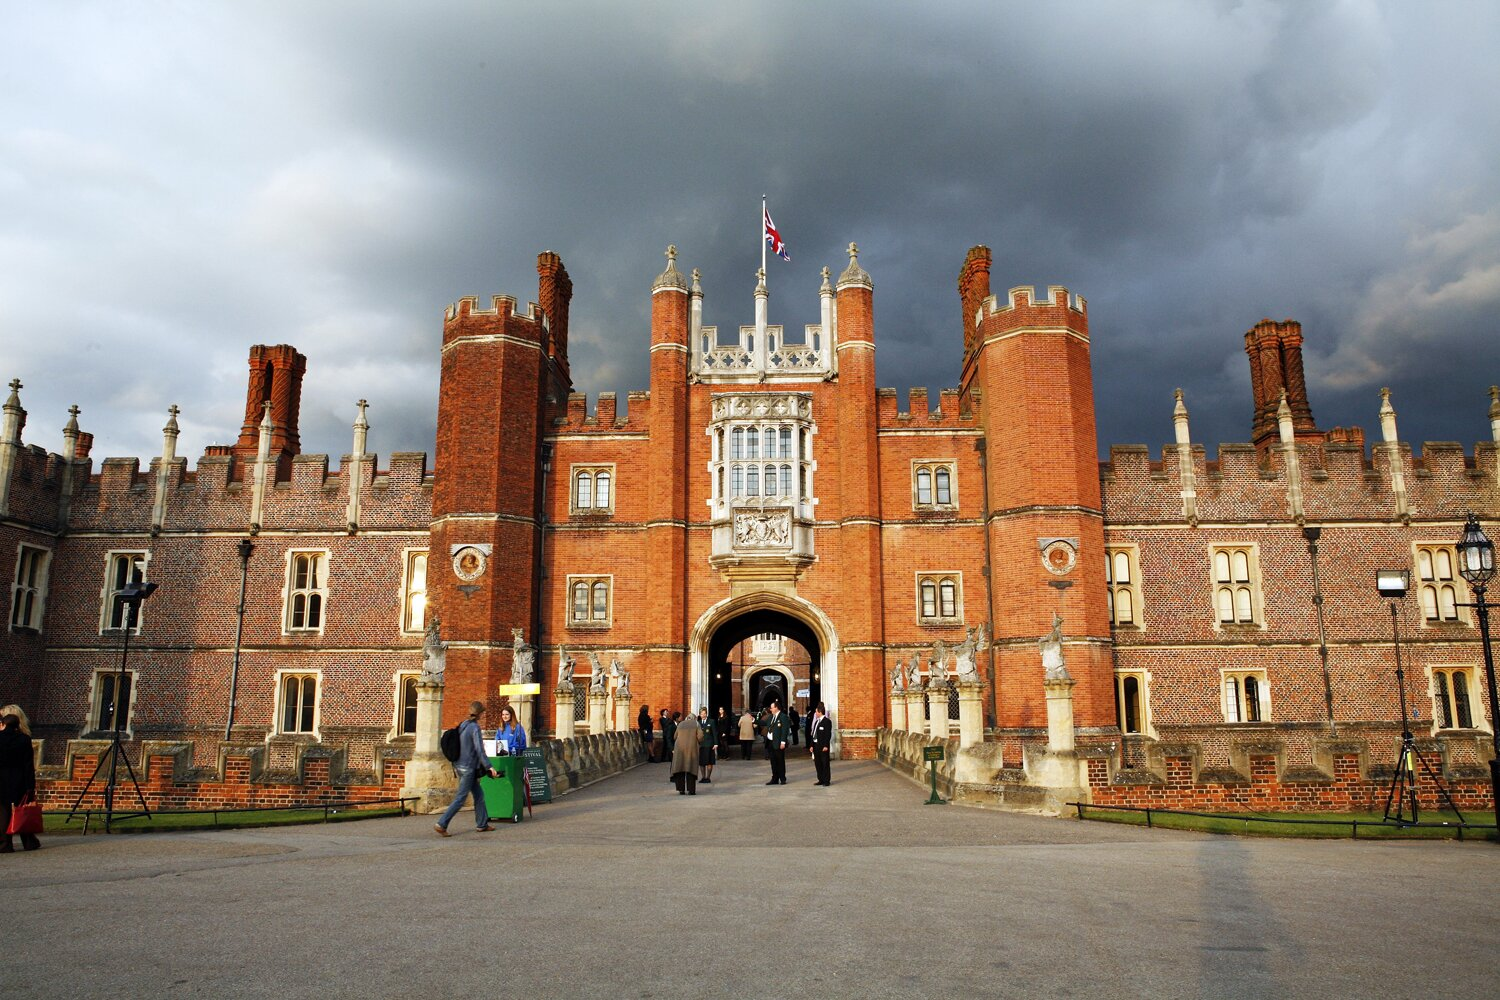 Kensington Palace Among Royal Residences Being Investigated for Ties to Slave Trade Image?url=https%3A%2F%2Fstatic.onecms.io%2Fwp-content%2Fuploads%2Fsites%2F20%2F2020%2F10%2F28%2Fhampton-court-palace-1